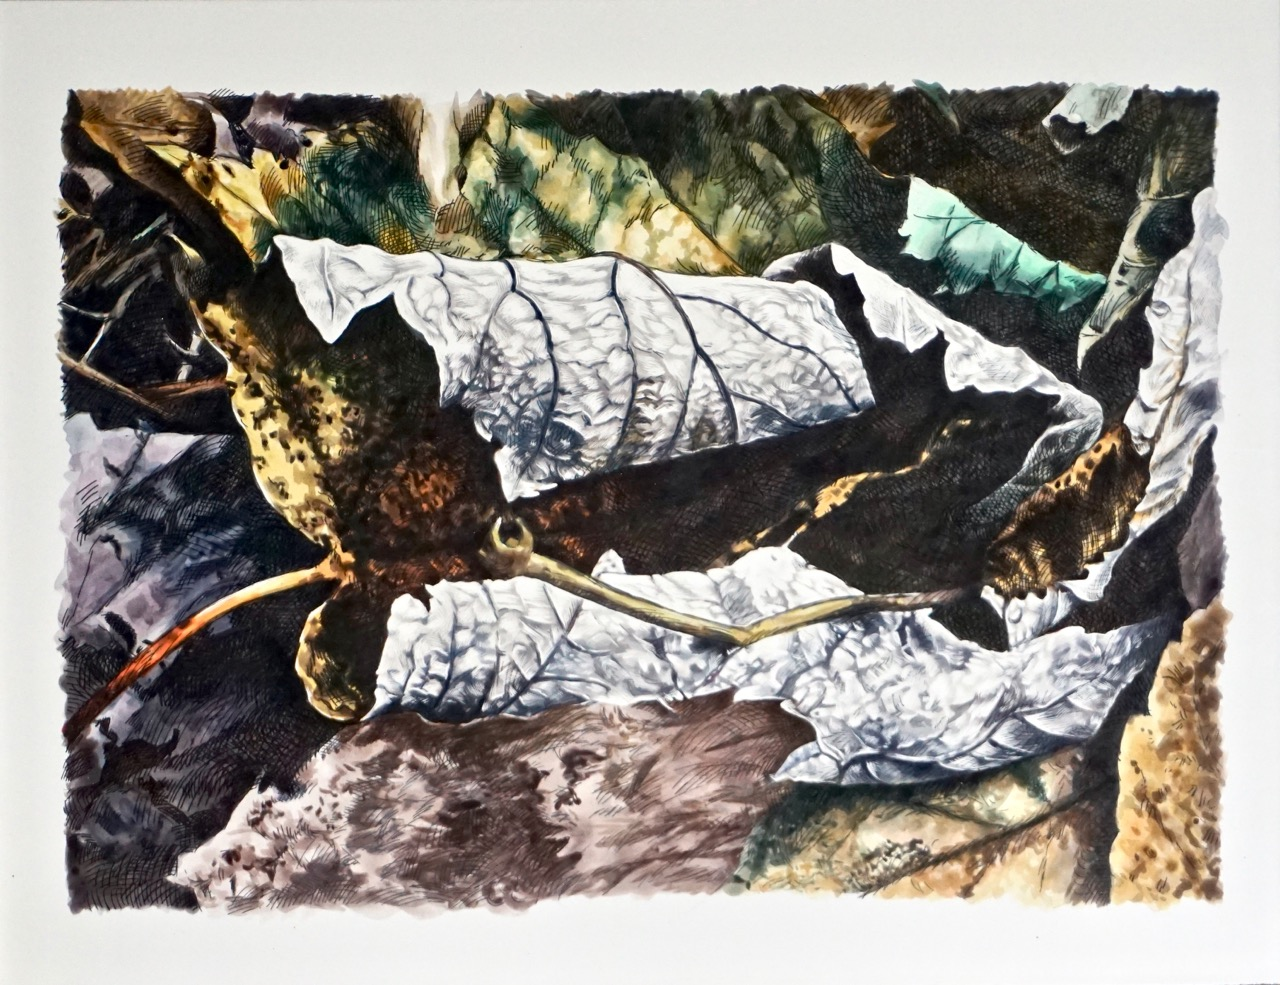 Curling leaves with a white and black outside and mottled brown inside lay curled on the forest floor. There is a high level of detail in the painting, with the veins of each leaf rendered perfectly in ink. Curling leaves with a white and black outside and mottled brown inside lay curled on the forest floor. There is a high level of detail in the painting, with the veins of each leaf rendered perfectly in ink.